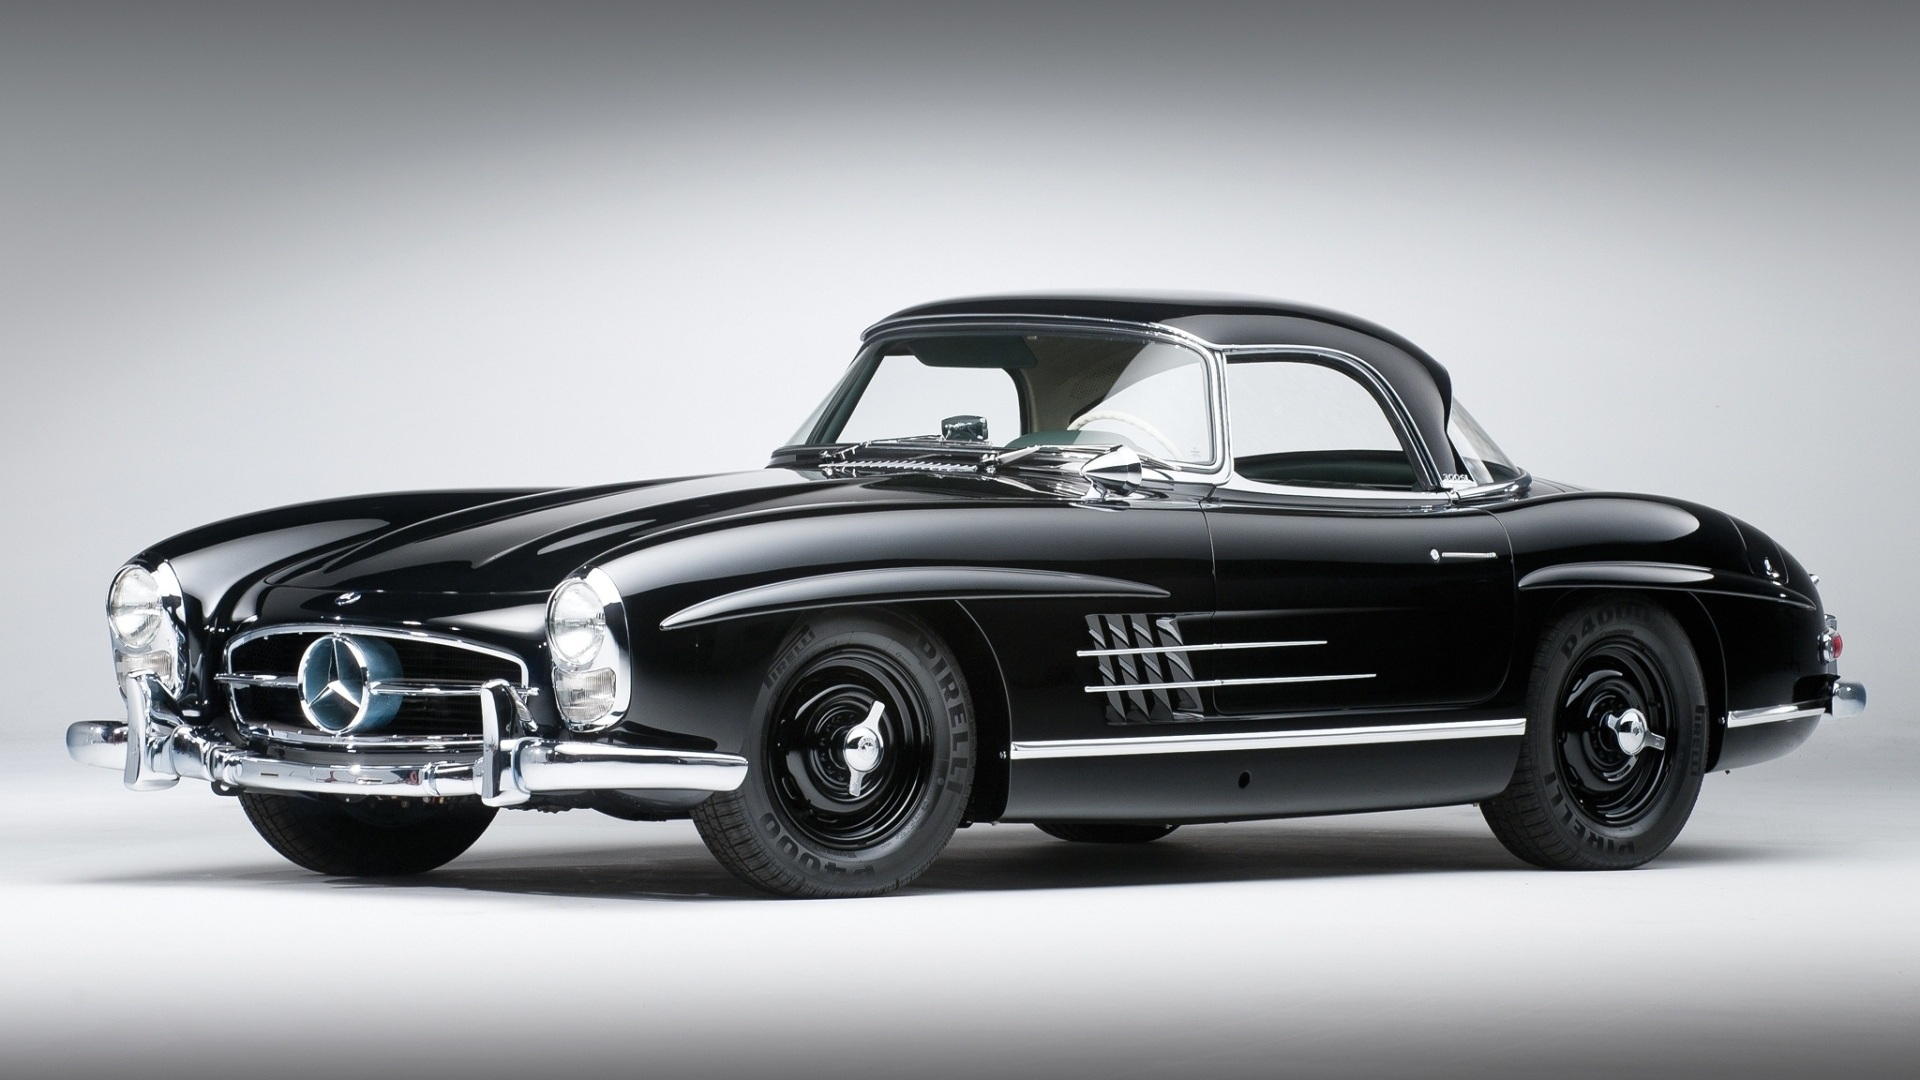 Mercedes benz 300 sl wallpapers images photos pictures for Mercedes benz sports cars